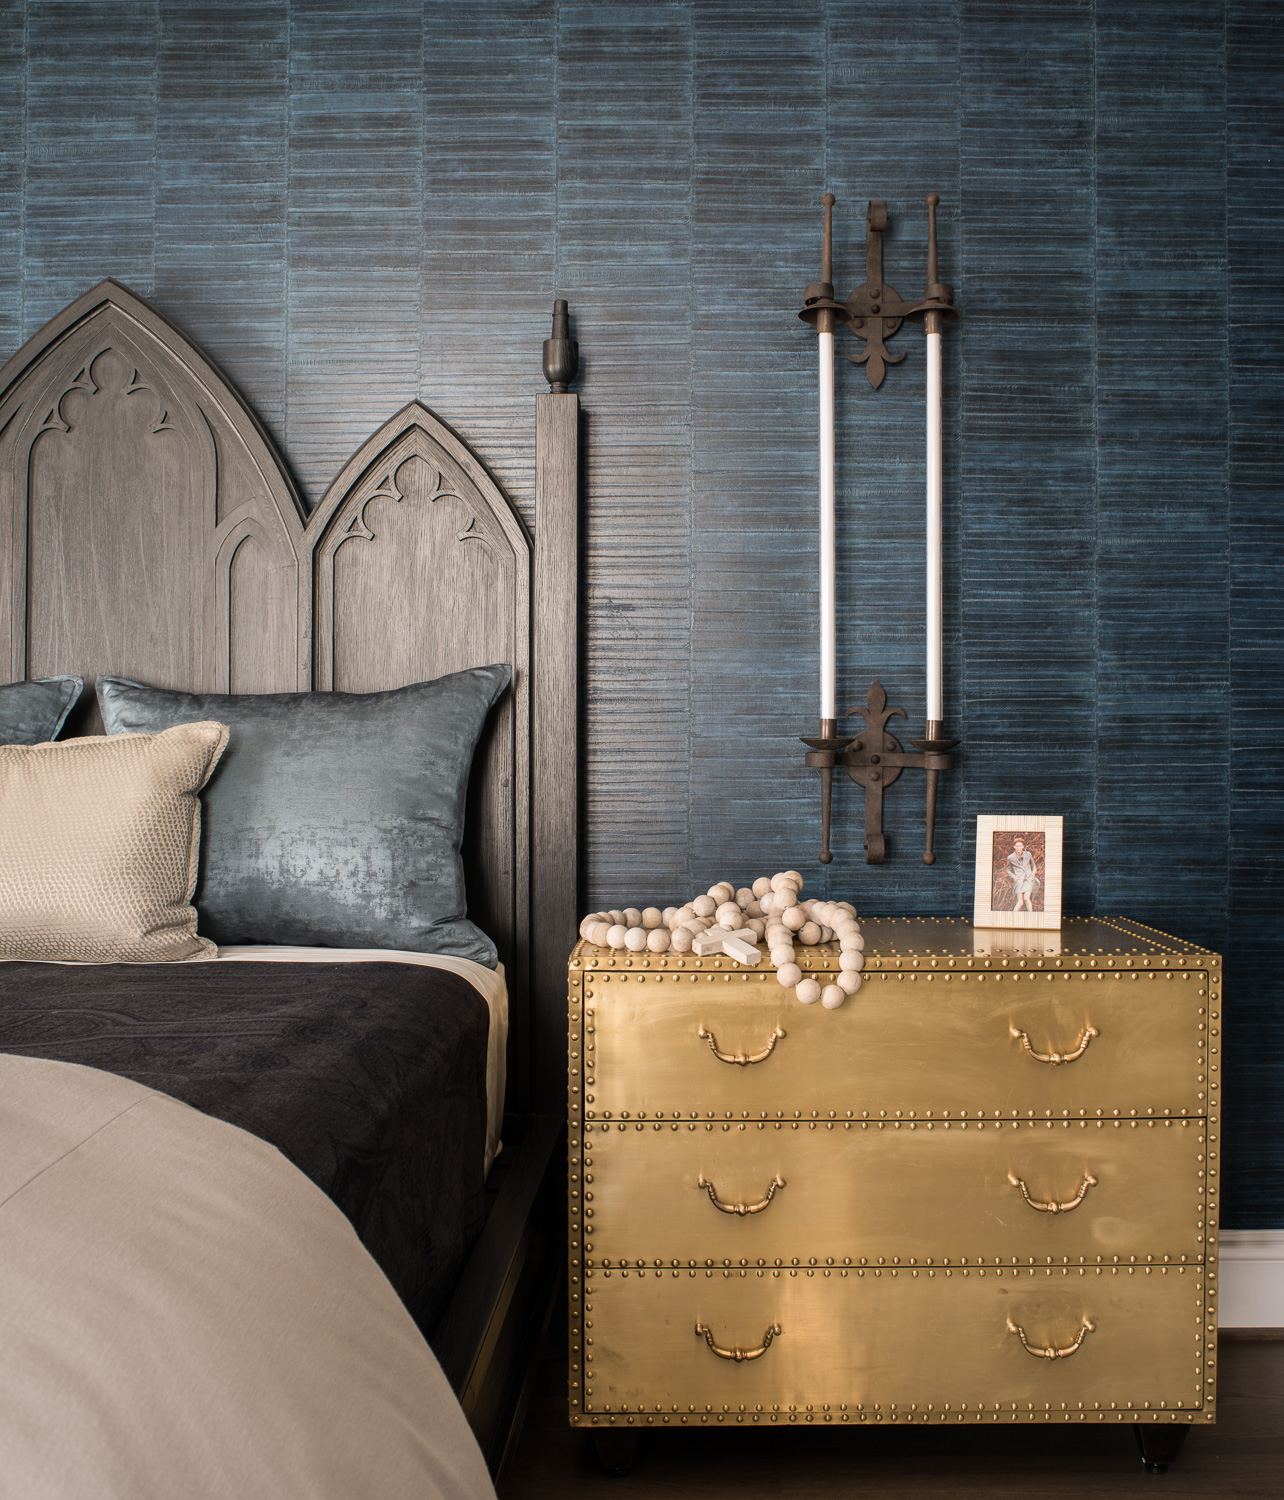 17th Street Residence, Master Bedroom, blue textured wallpaper by Tineke Triggs / Artistic Designs for Living